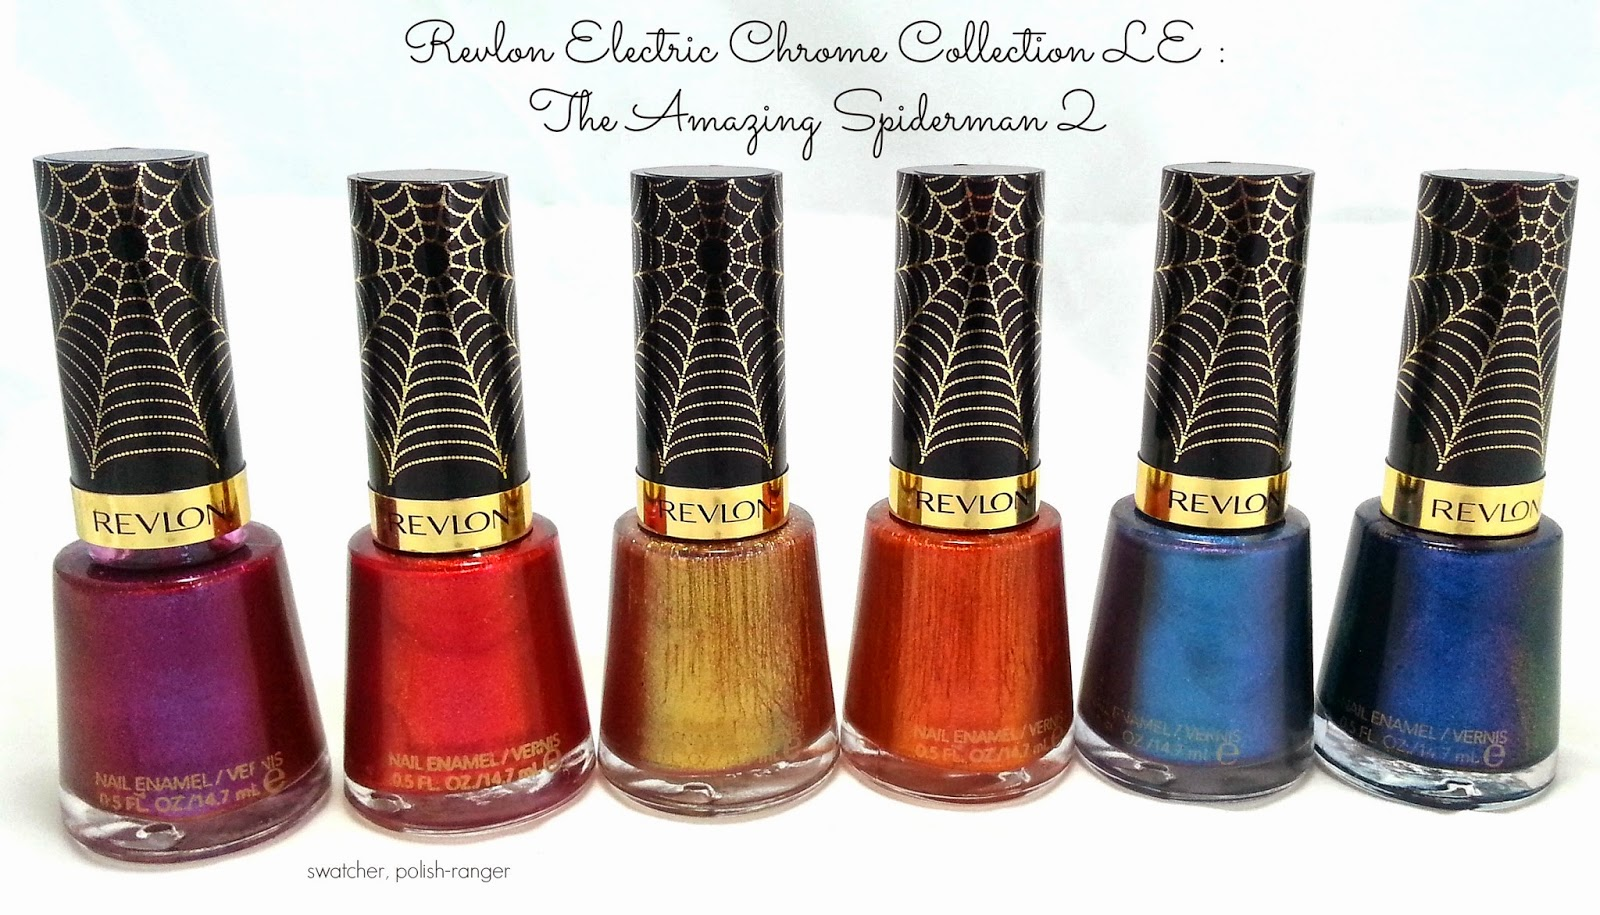 Revlon Electric Chrome Collection limited edition : The Amazing Spiderman Two